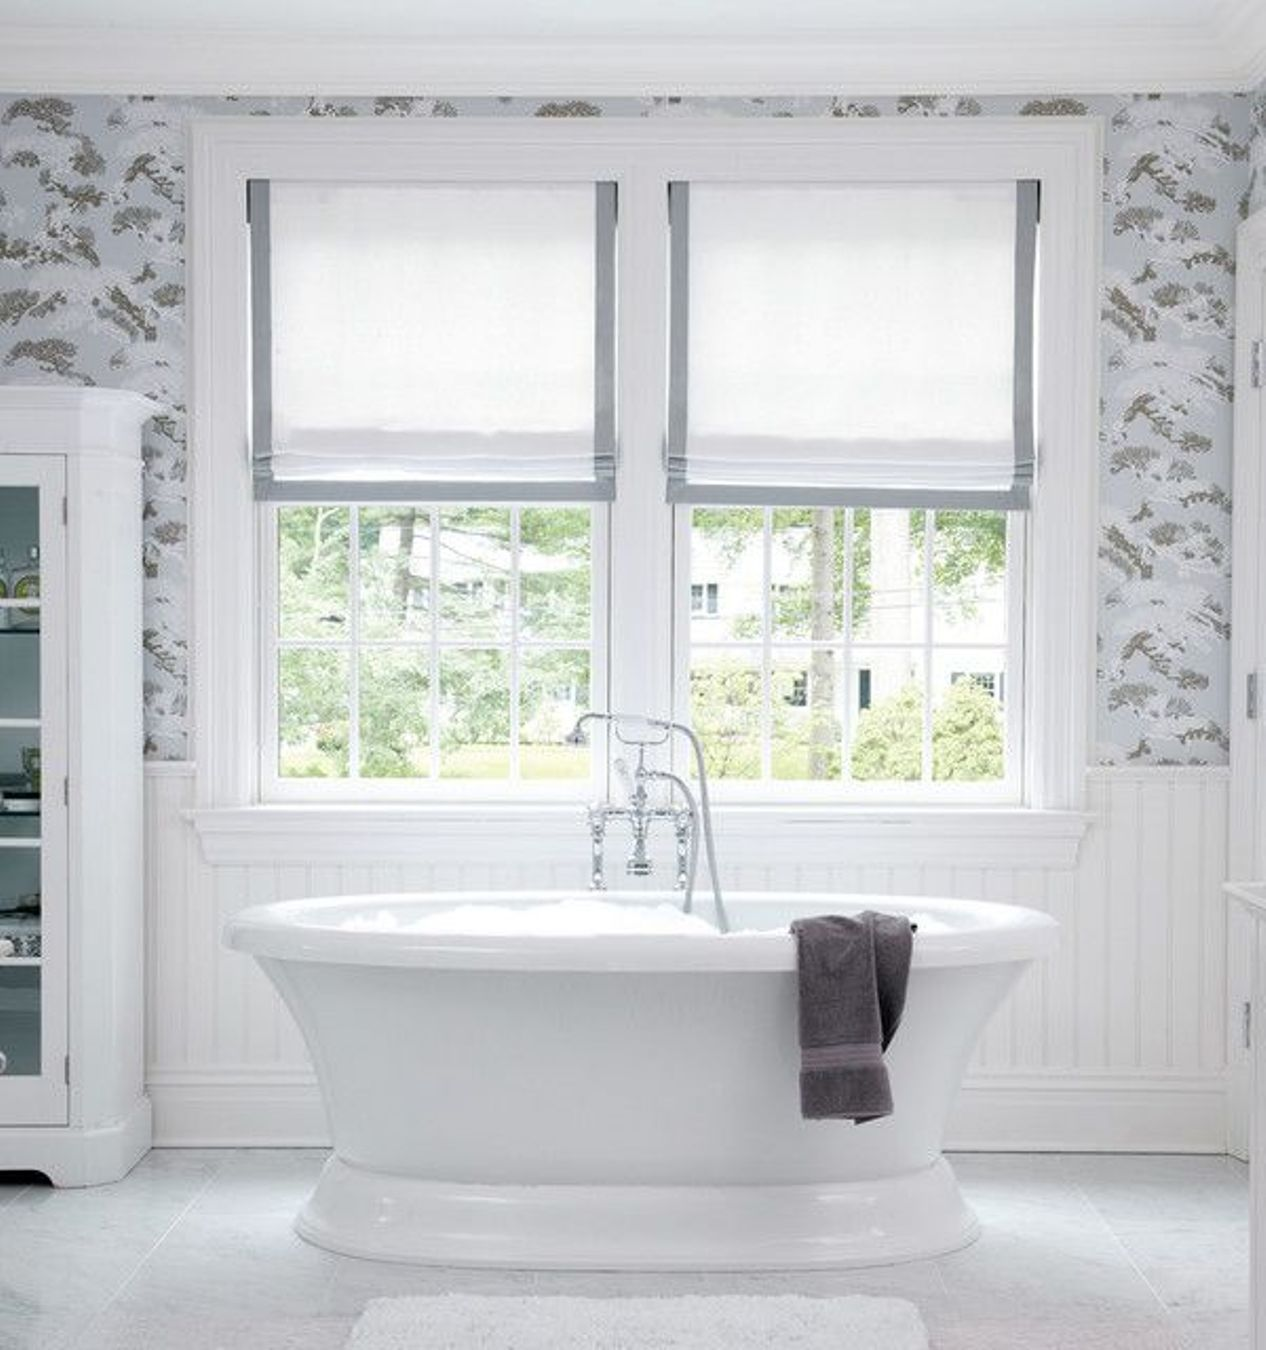 Inspirations Designs Bathroom Window Treatments Ideas With White And ...